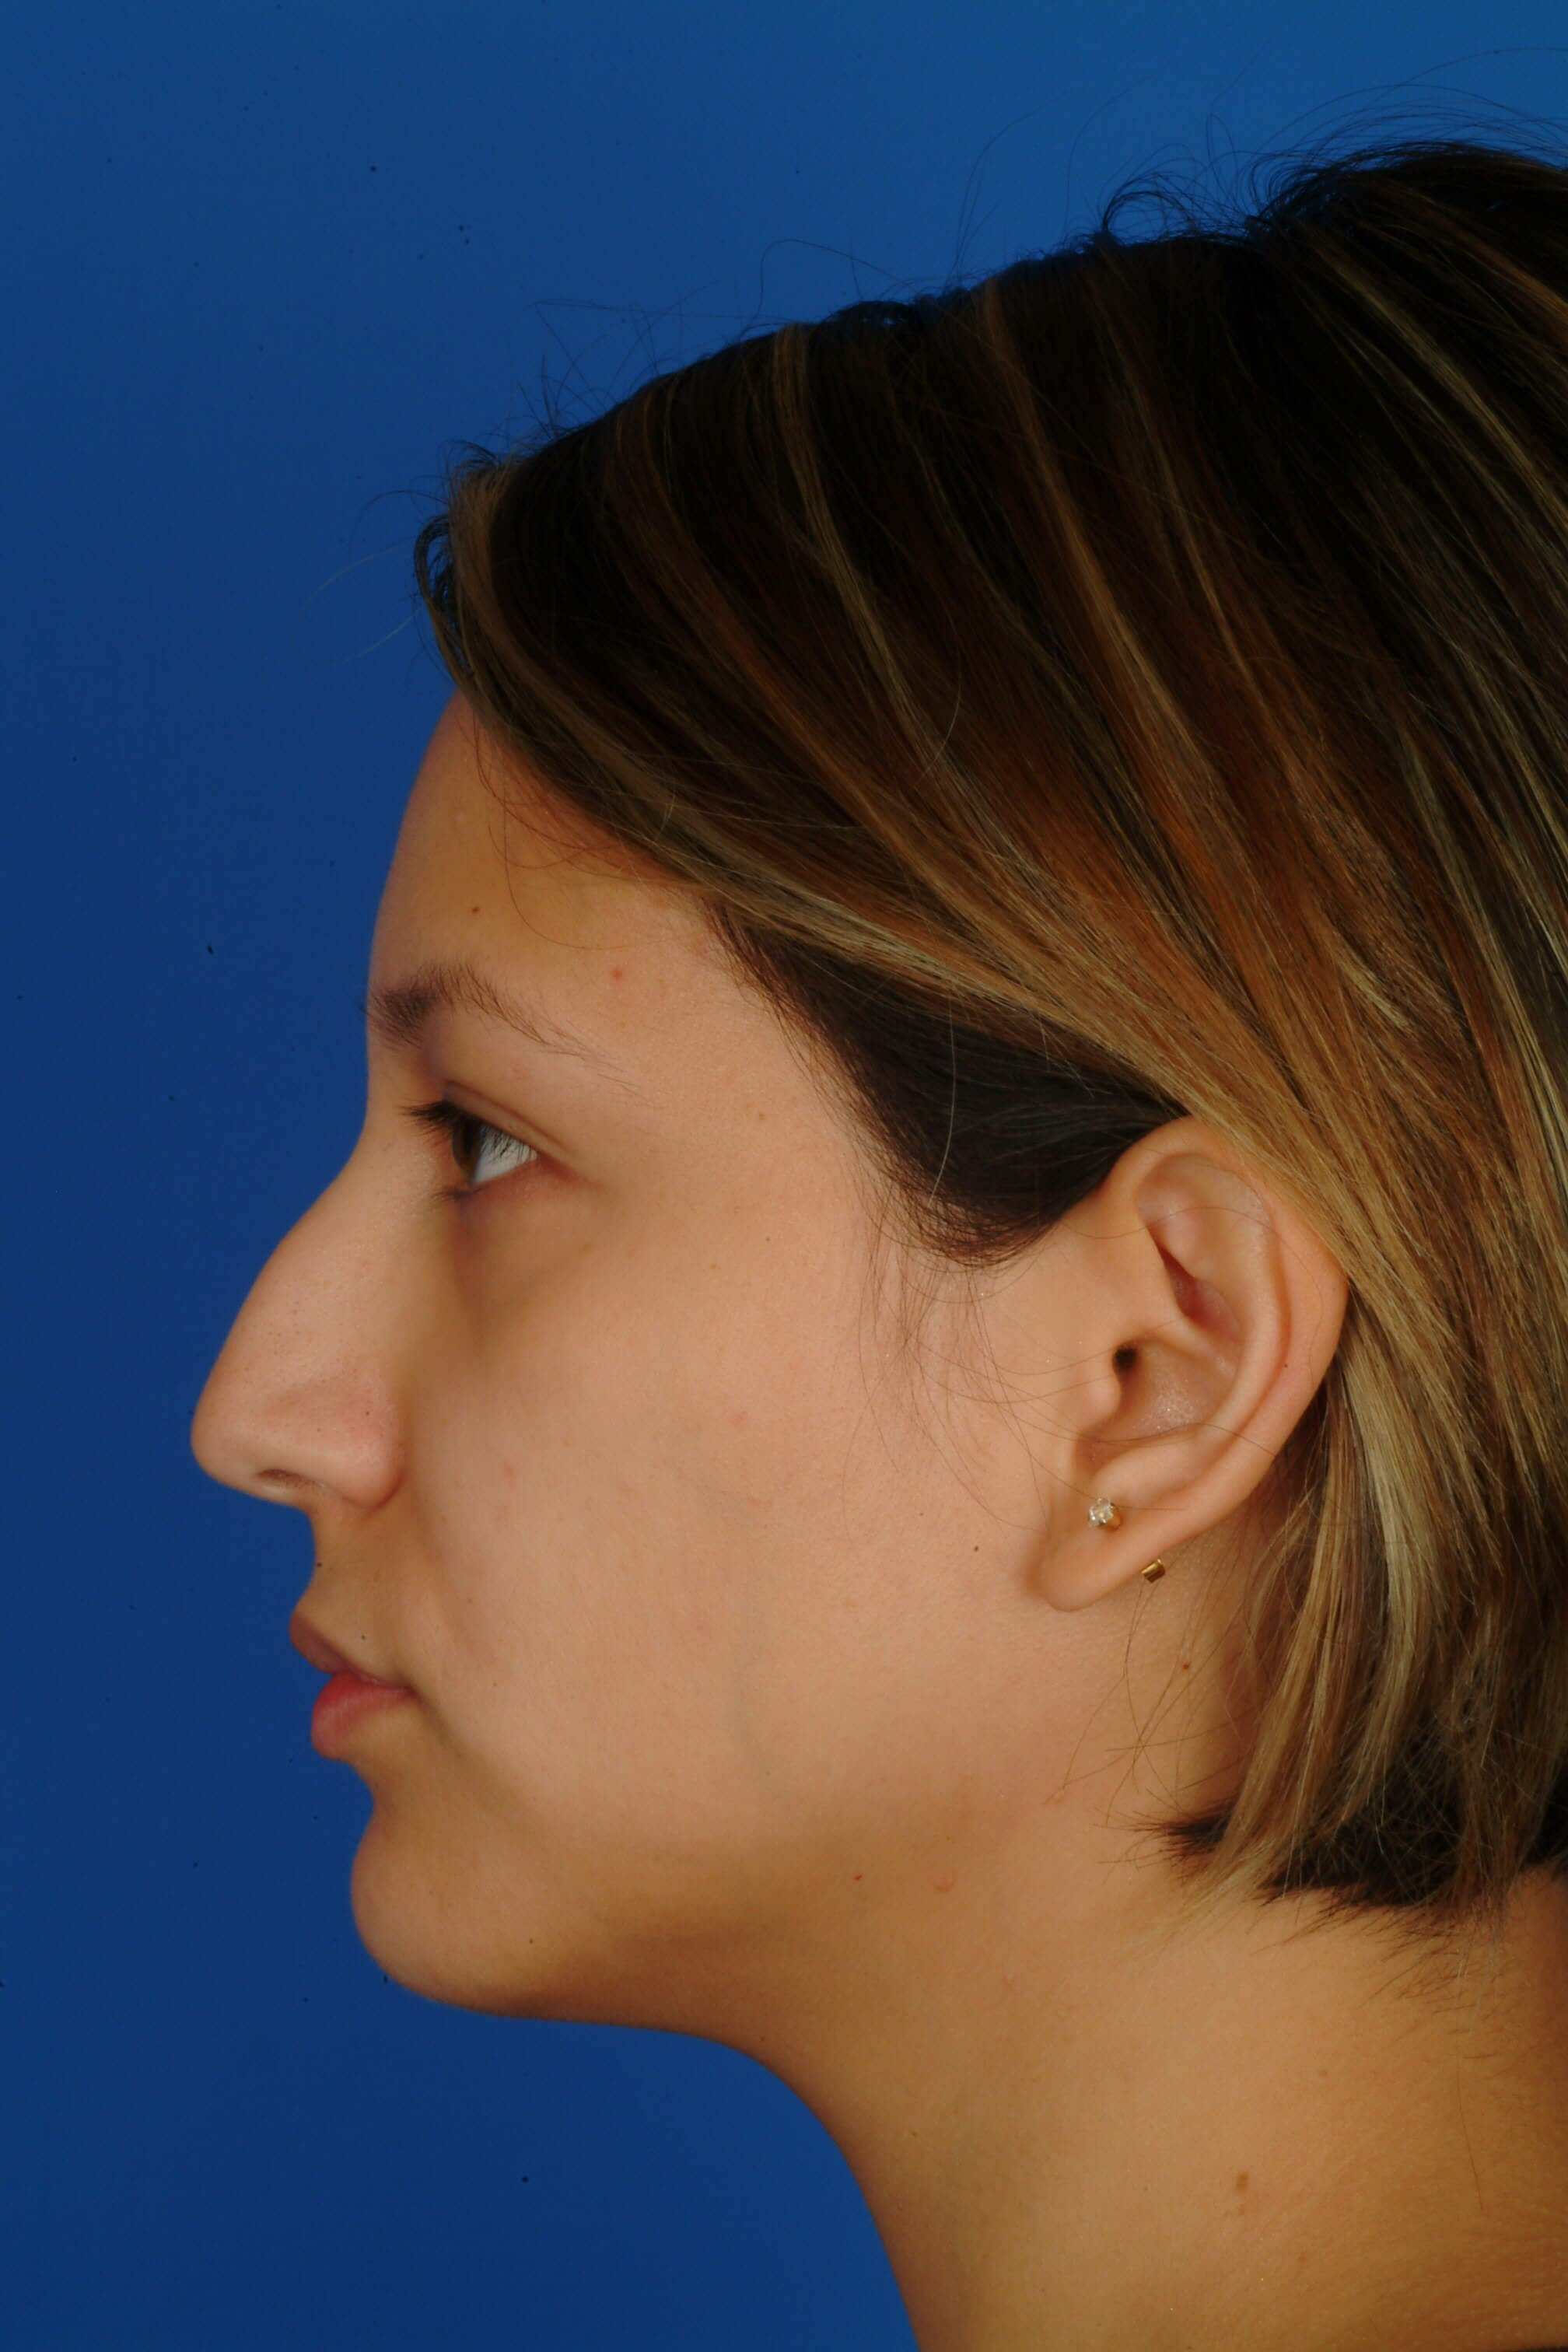 Profile View Before Rhinoplasty